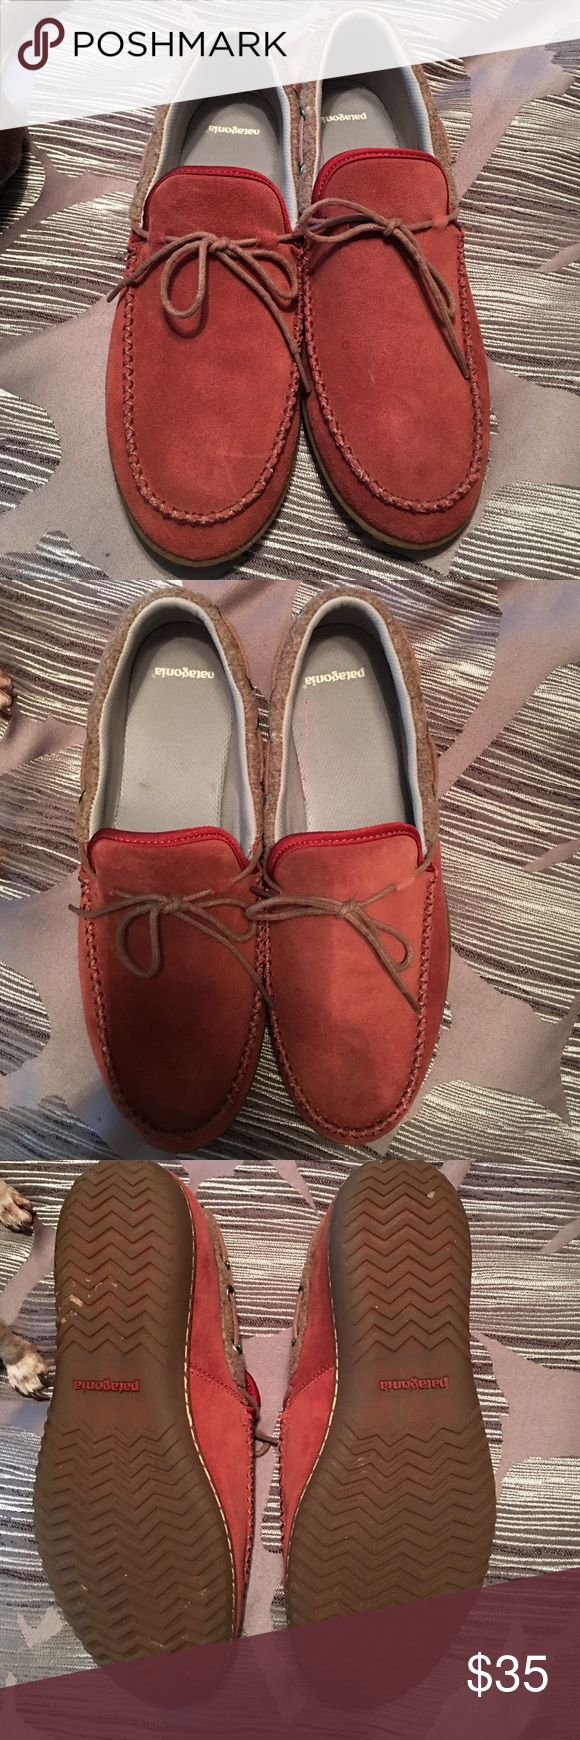 Patagonia shoes! Like new worn maybe once Patagonia shoes! Patagonia Shoes Flats & Loafers